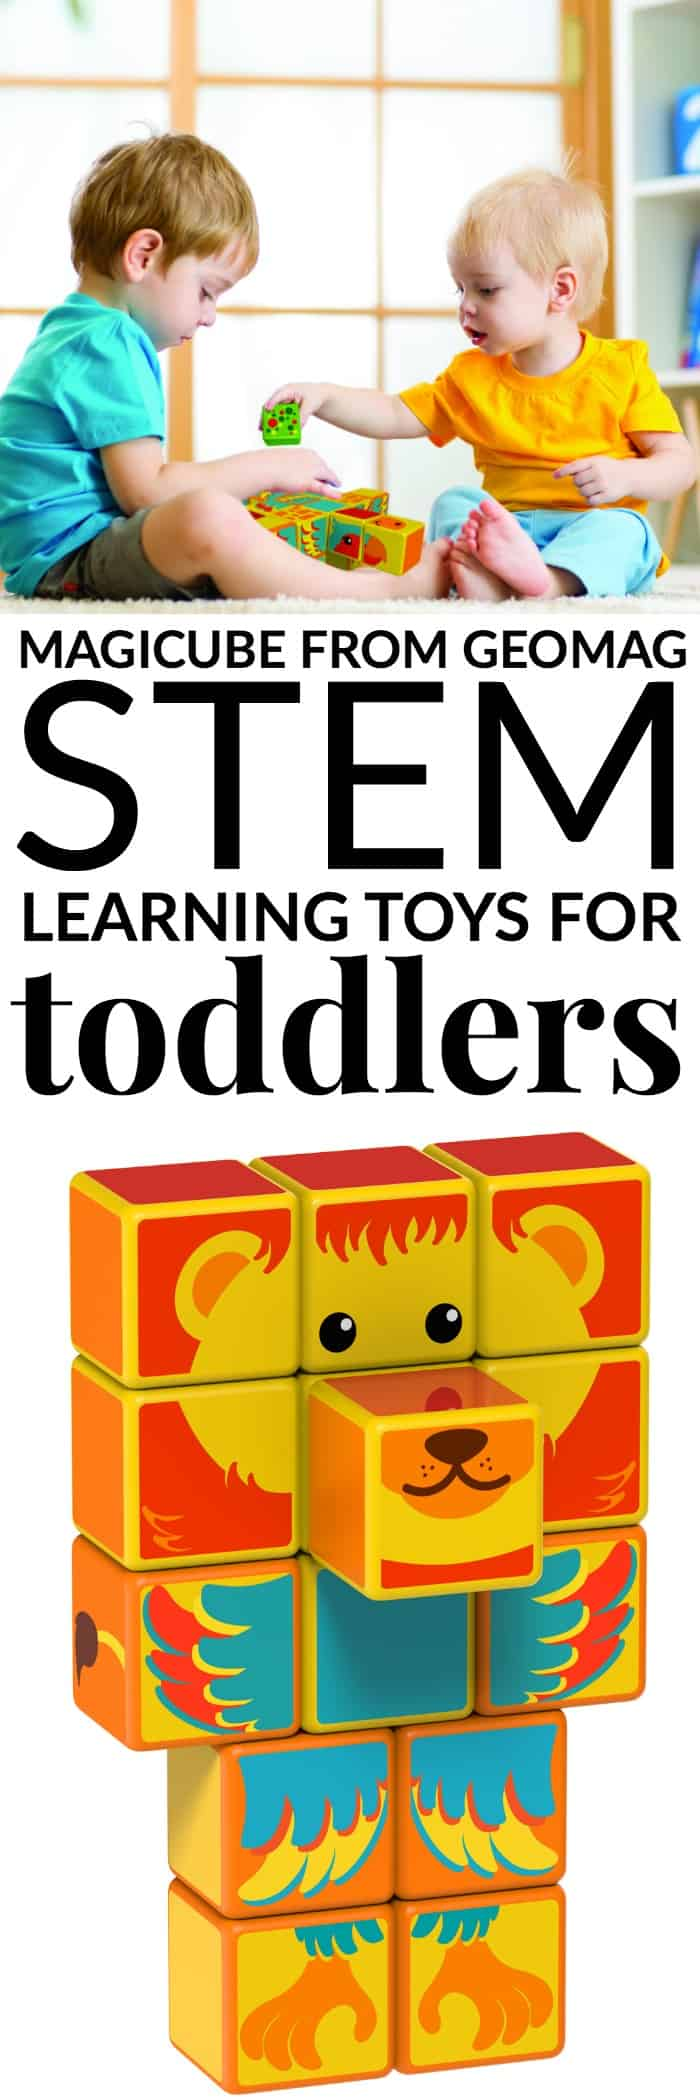 Magicube - Stem learning toys for toddlers